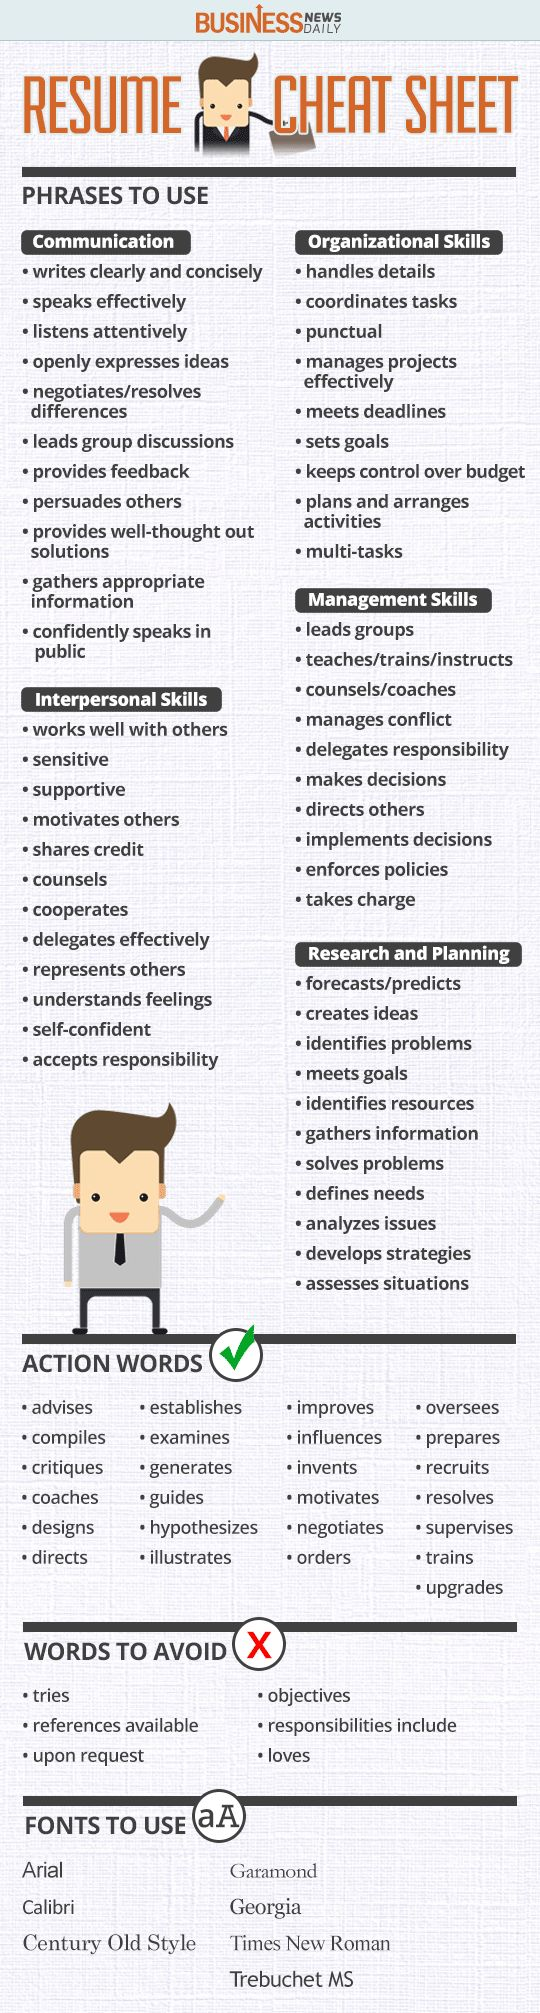 Opposenewapstandardsus  Scenic  Ideas About Resume On Pinterest  Cv Format Resume Cv And  With Interesting Resume Cheat Sheet Infographic Andrews Almost Done With A Complete Unit On Employment Which With Adorable Nurse Resume Skills Also Student Assistant Resume In Addition College Student Resume Templates And Graduate Teaching Assistant Resume As Well As College Internship Resume Sample Additionally House Manager Resume From Pinterestcom With Opposenewapstandardsus  Interesting  Ideas About Resume On Pinterest  Cv Format Resume Cv And  With Adorable Resume Cheat Sheet Infographic Andrews Almost Done With A Complete Unit On Employment Which And Scenic Nurse Resume Skills Also Student Assistant Resume In Addition College Student Resume Templates From Pinterestcom